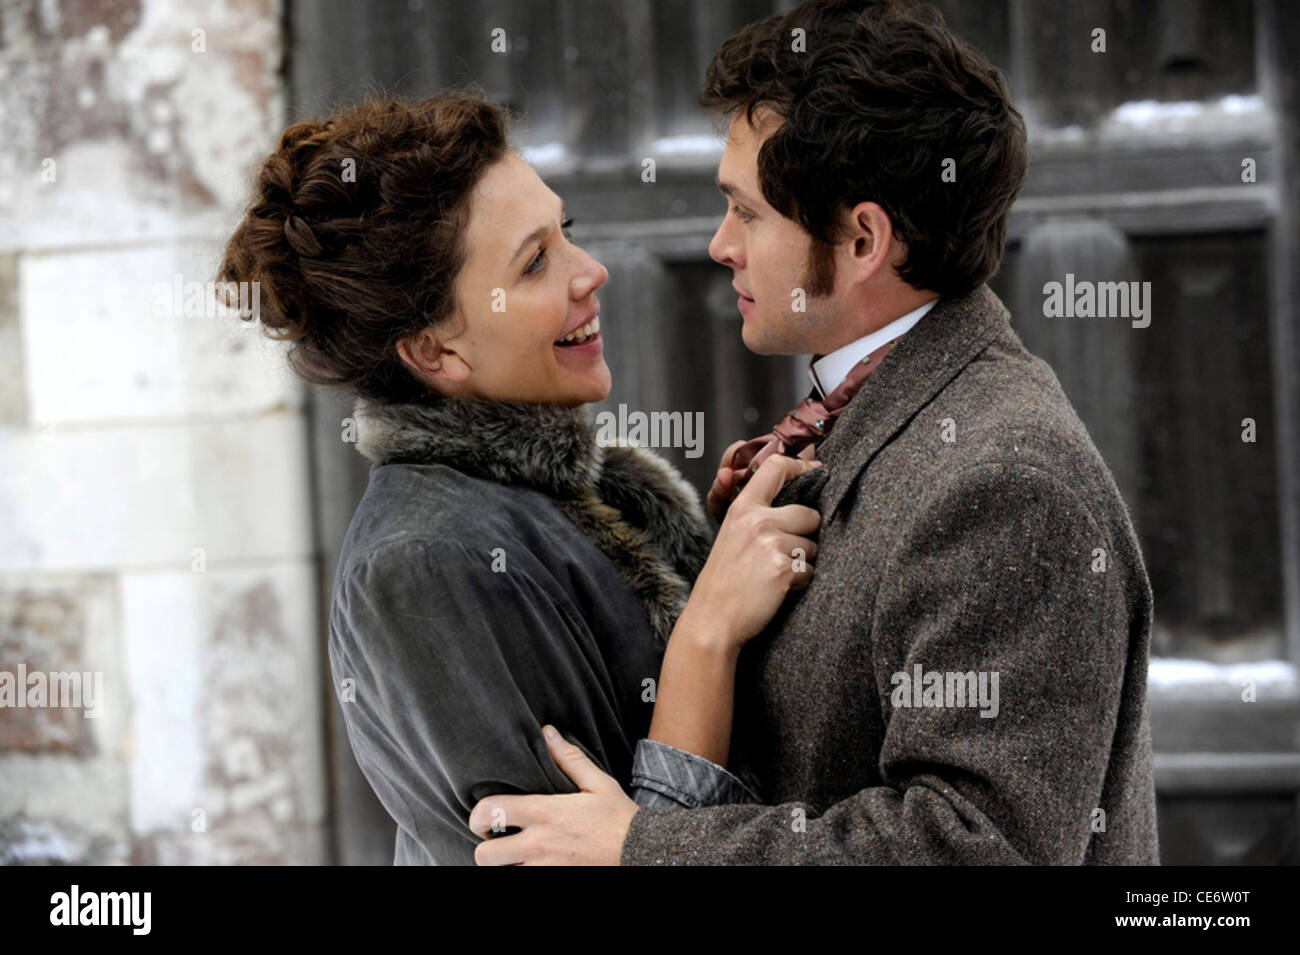 HYSTERIA  - 2011 Sony Pictures Classics film with Maggie Gyllenhaal as Charlotte Dalrymple and Hugh Dancy as Mortimer - Stock Image